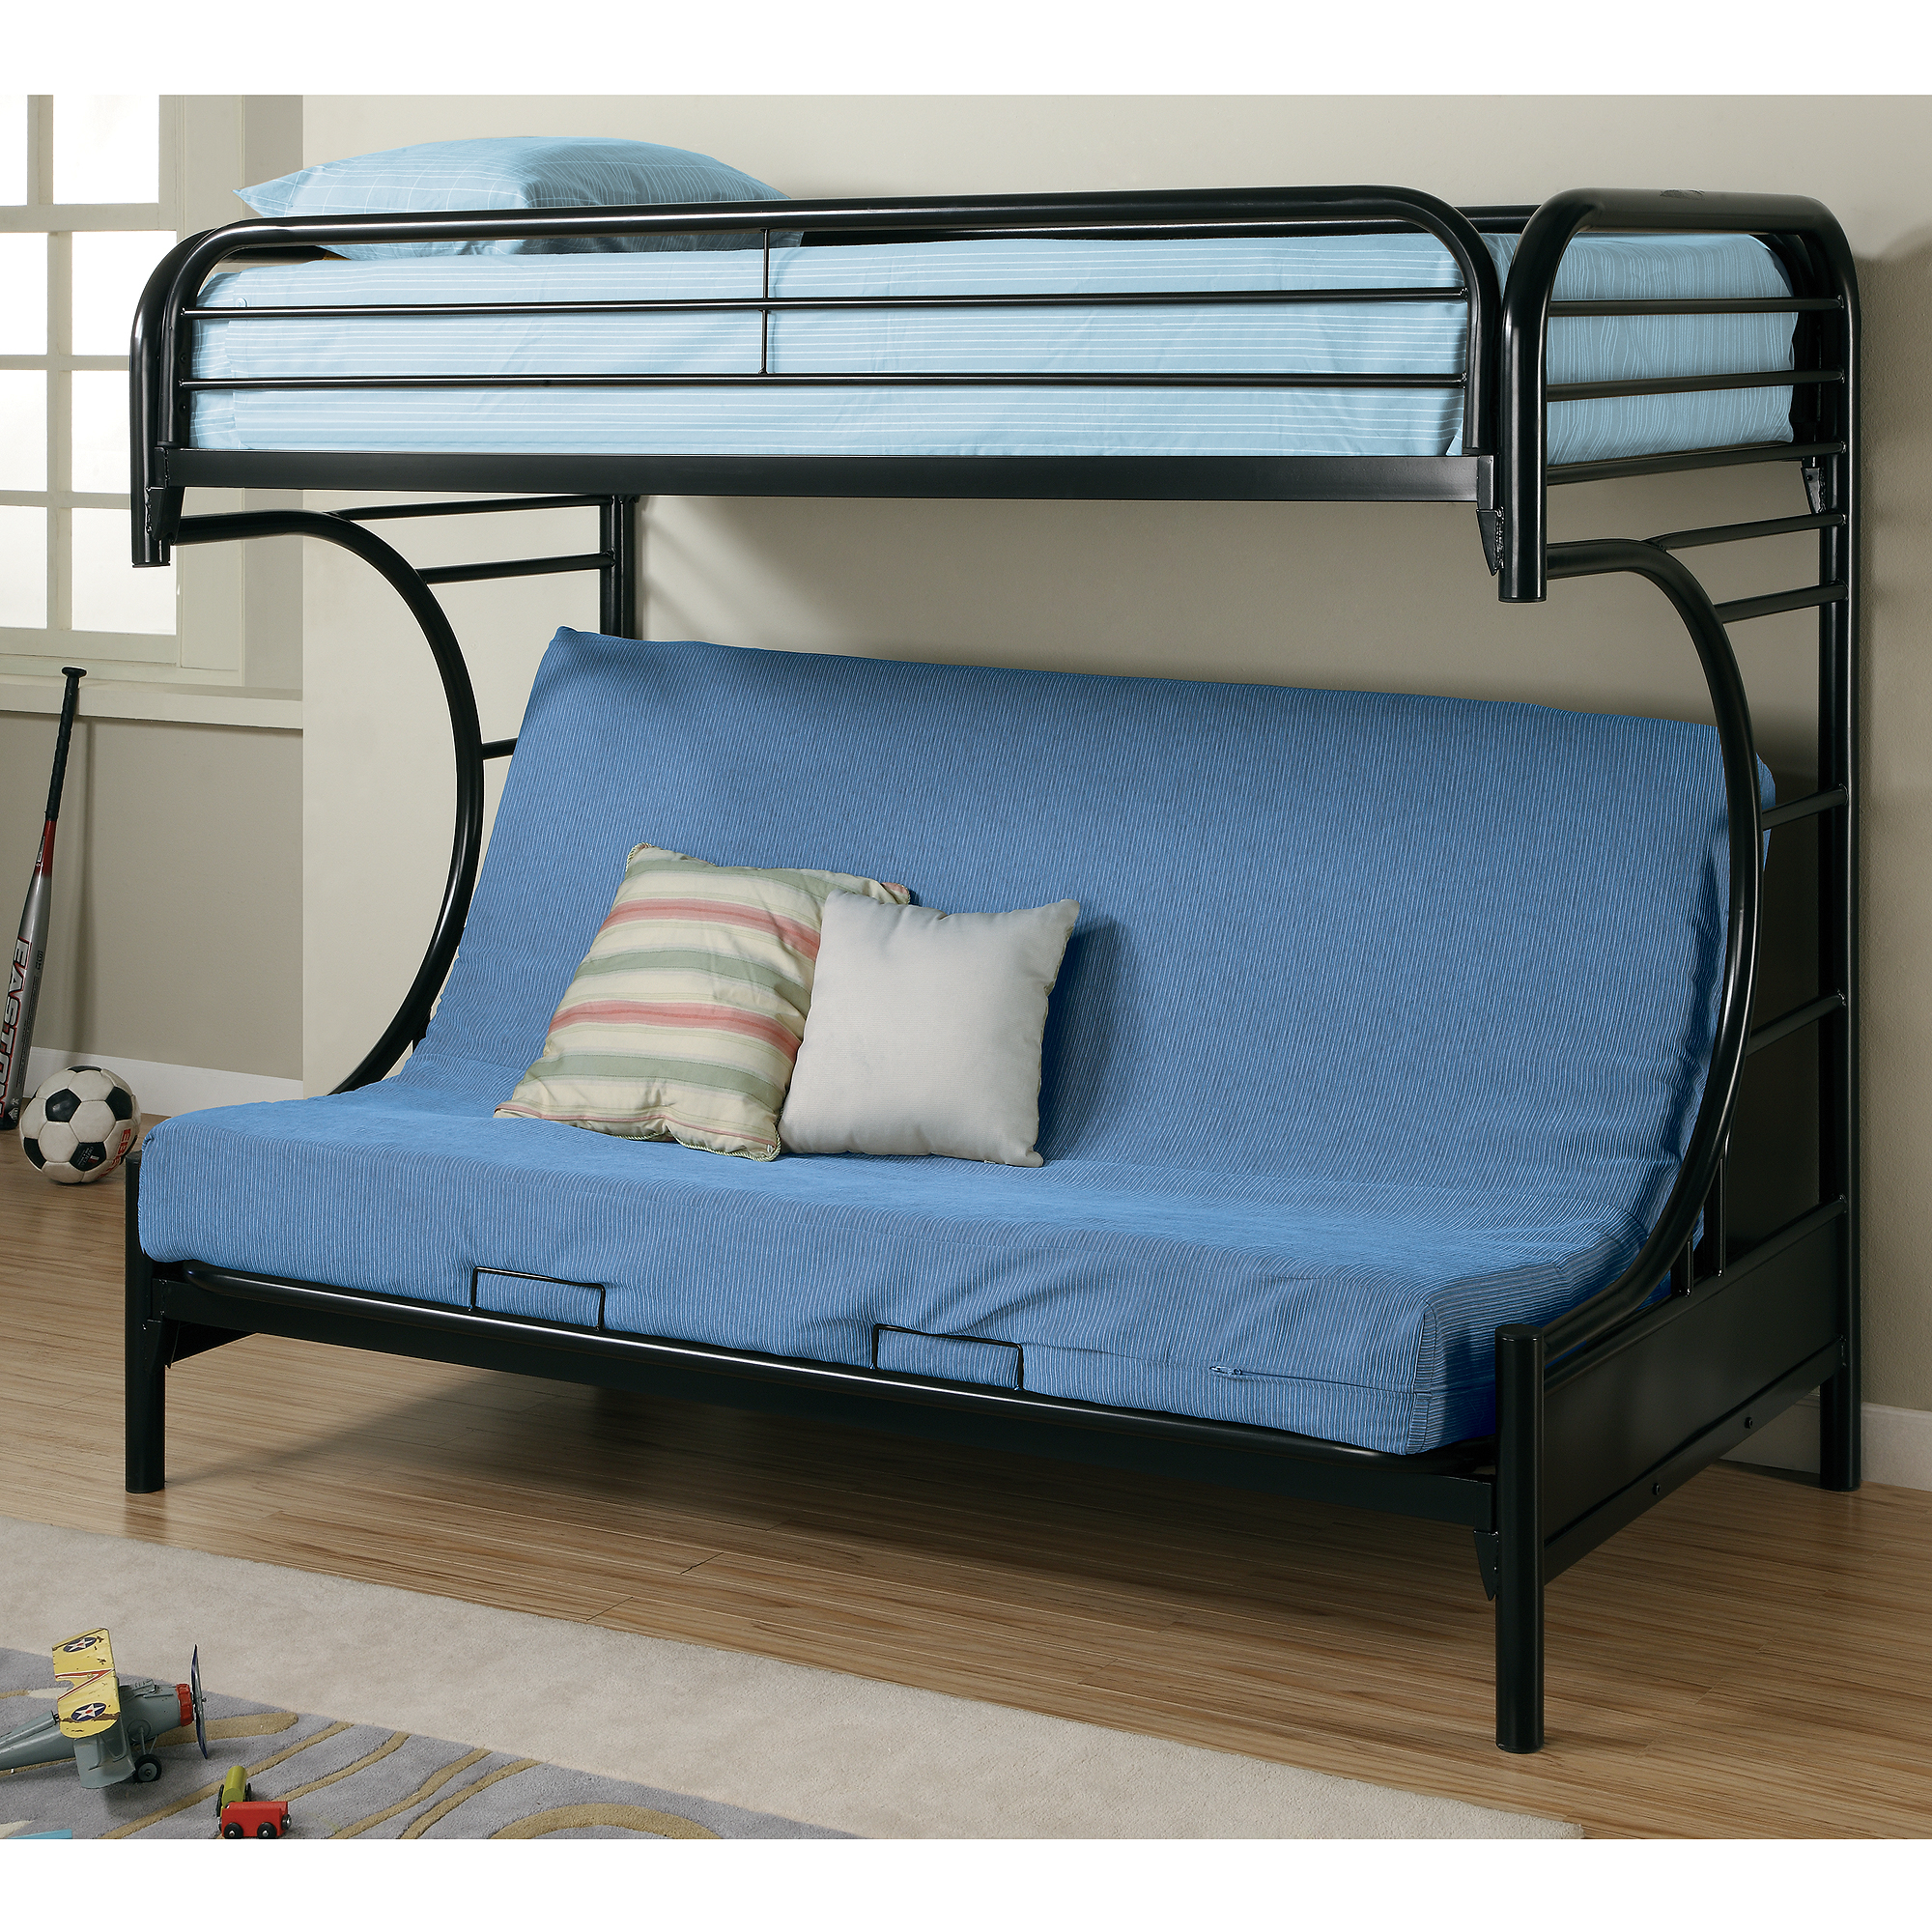 for beds futon within fabulous home bed sale futons sofa walmart fantastic sofas fabric couches bedroom your idea costco at